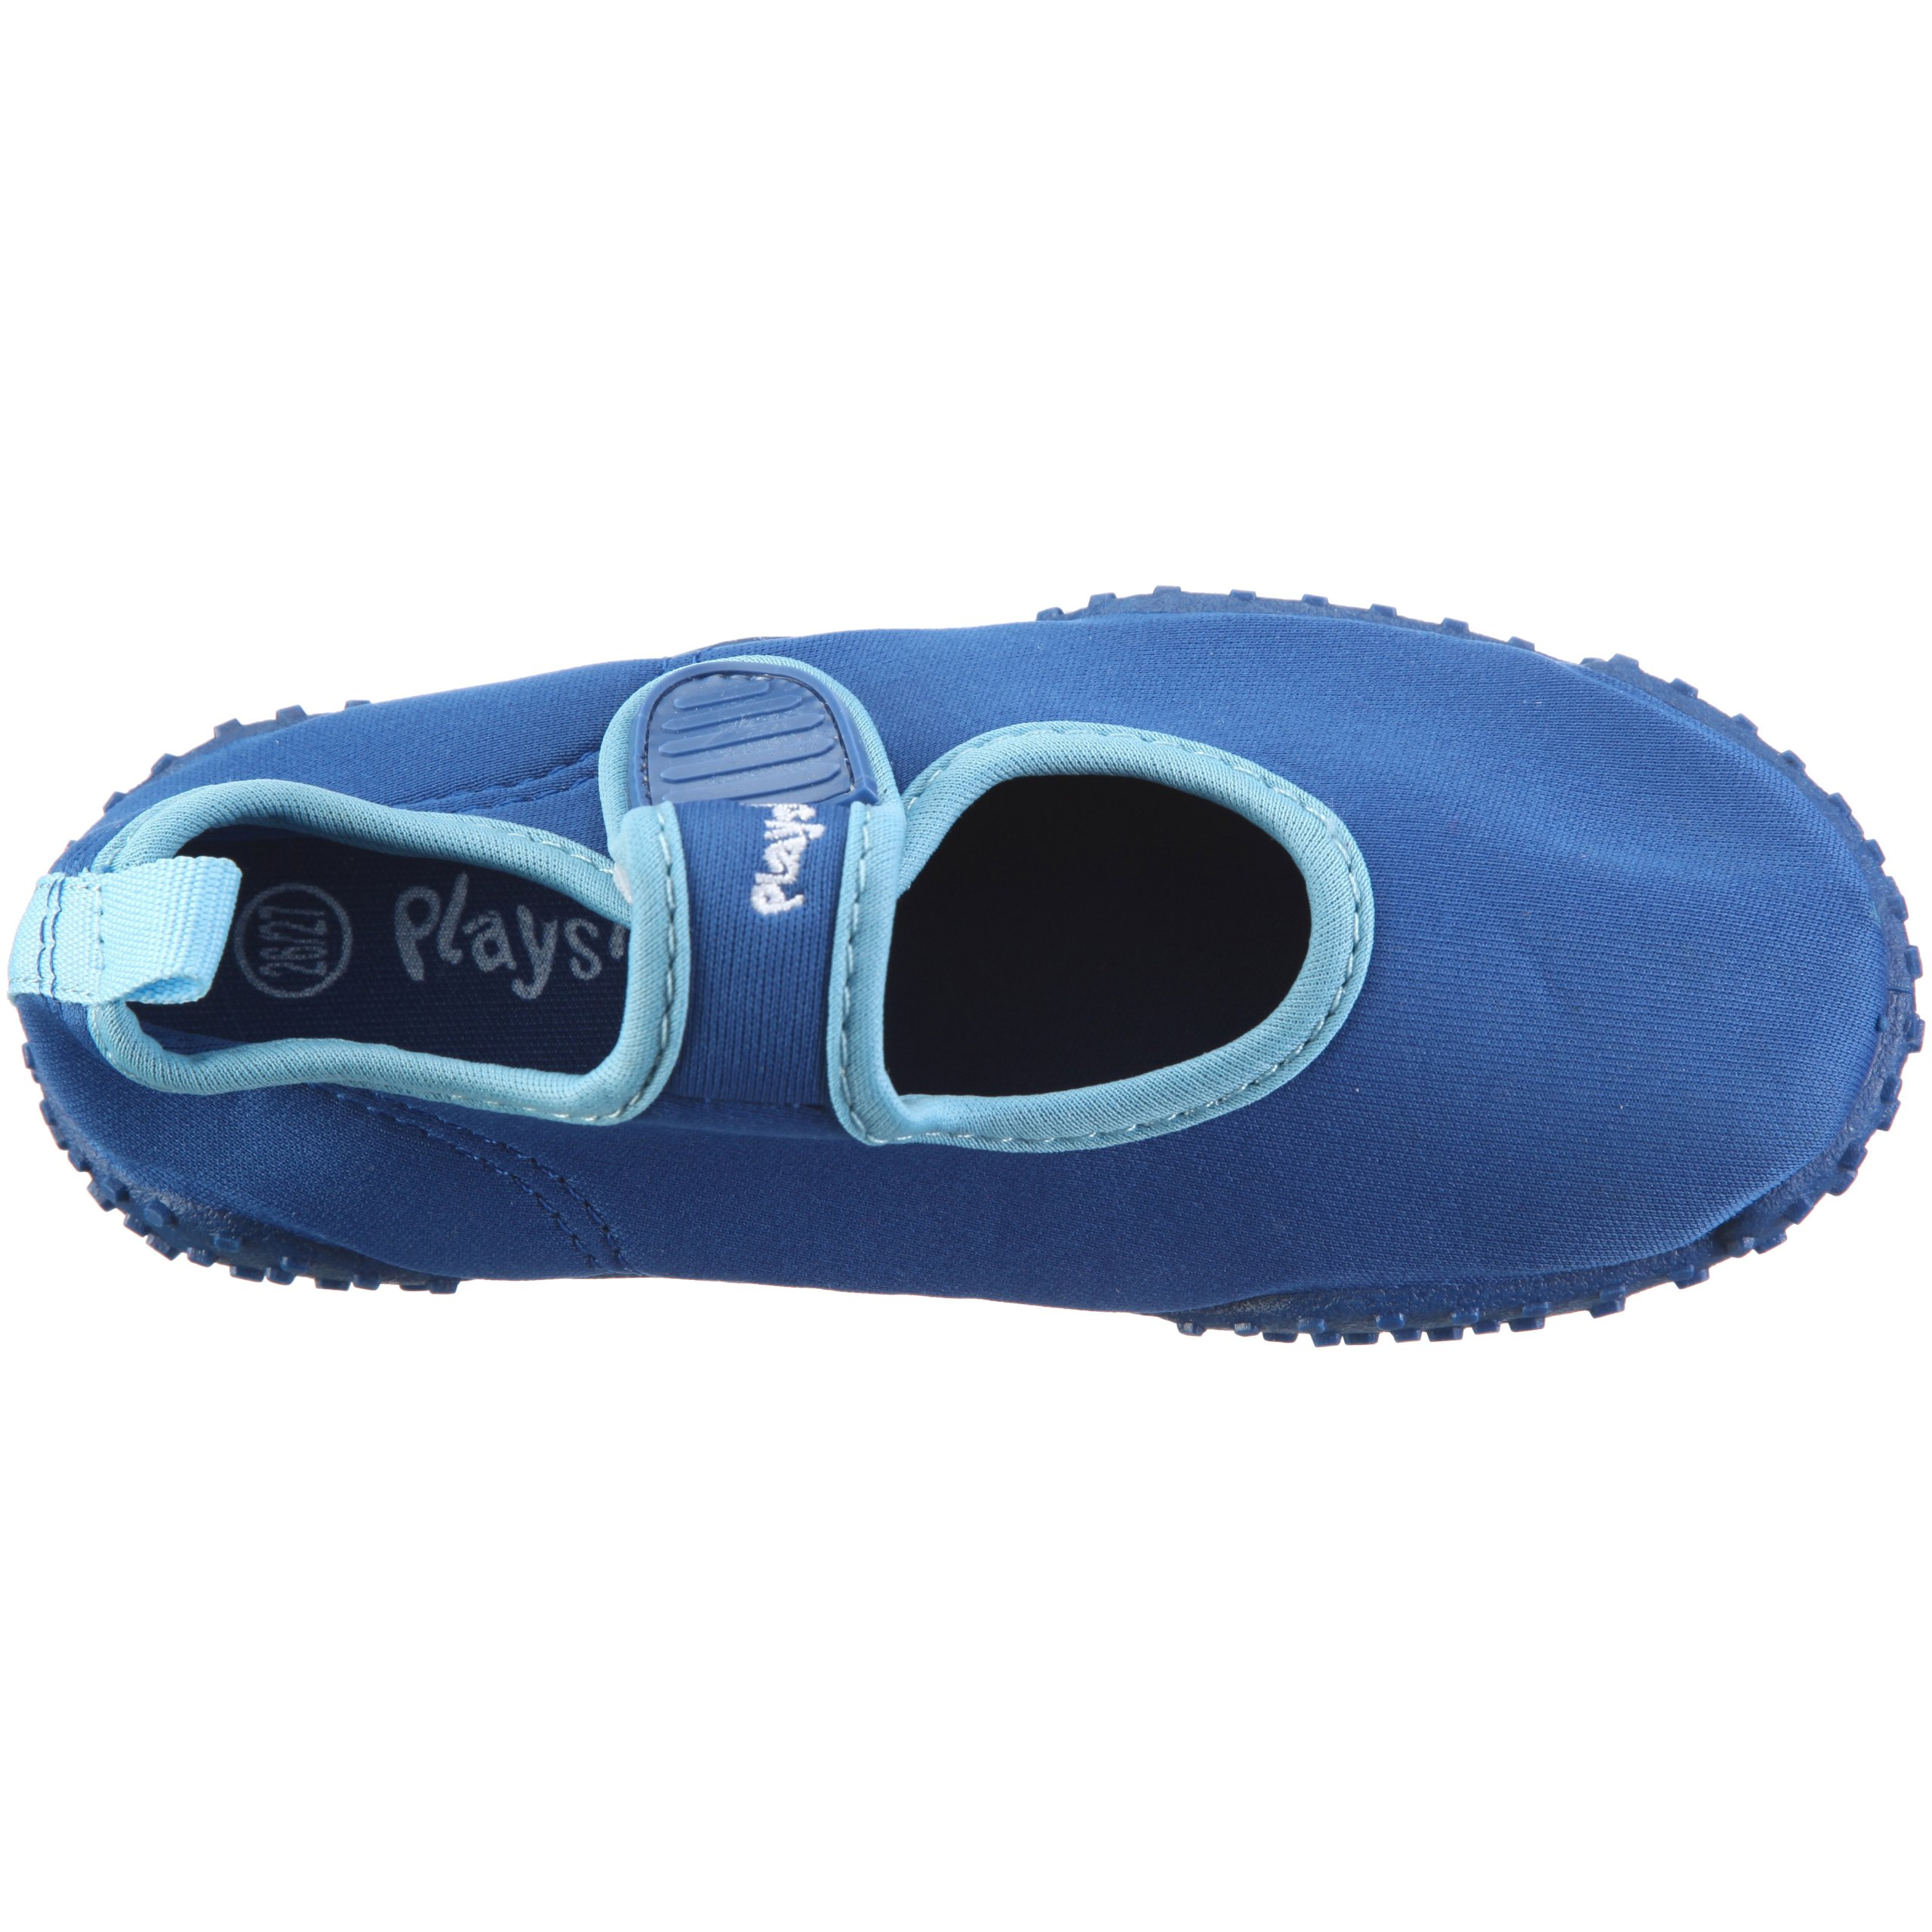 Playshoes Children's Aqua Beach Water Shoes (11.5 M US Little Kid, Blue) by Playshoes (Image #7)